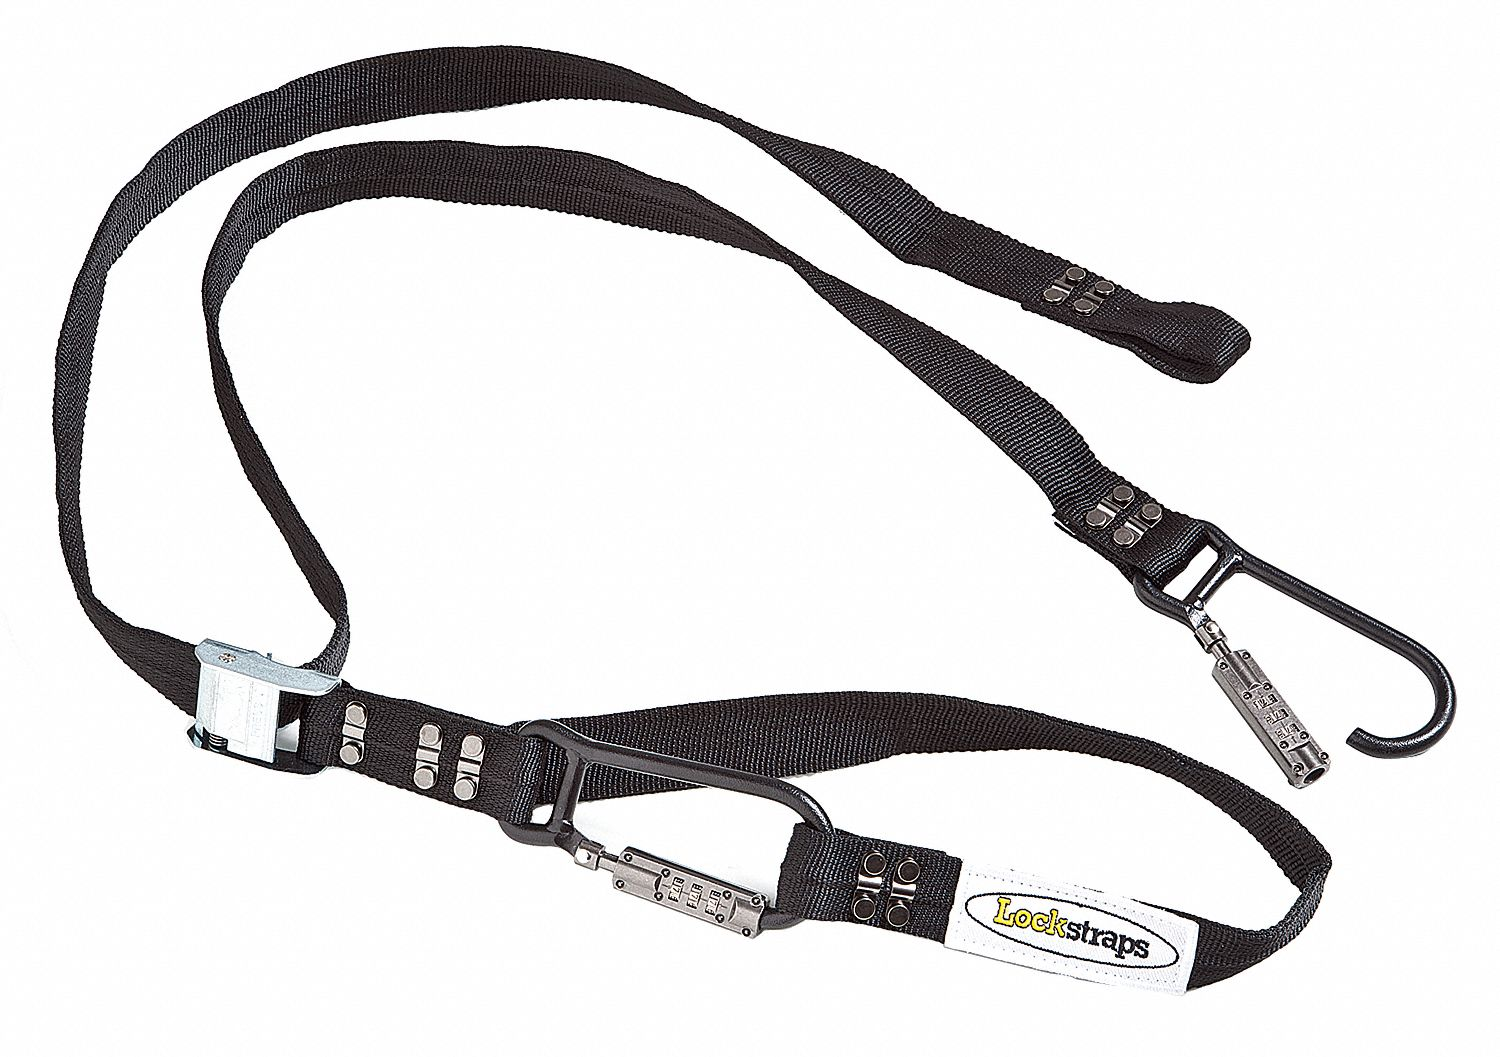 Tie Down Strap, 8 ft 6 inL x 1 1/2 inW, 500 lb Load Limit, Adjustment: Cam Buckle